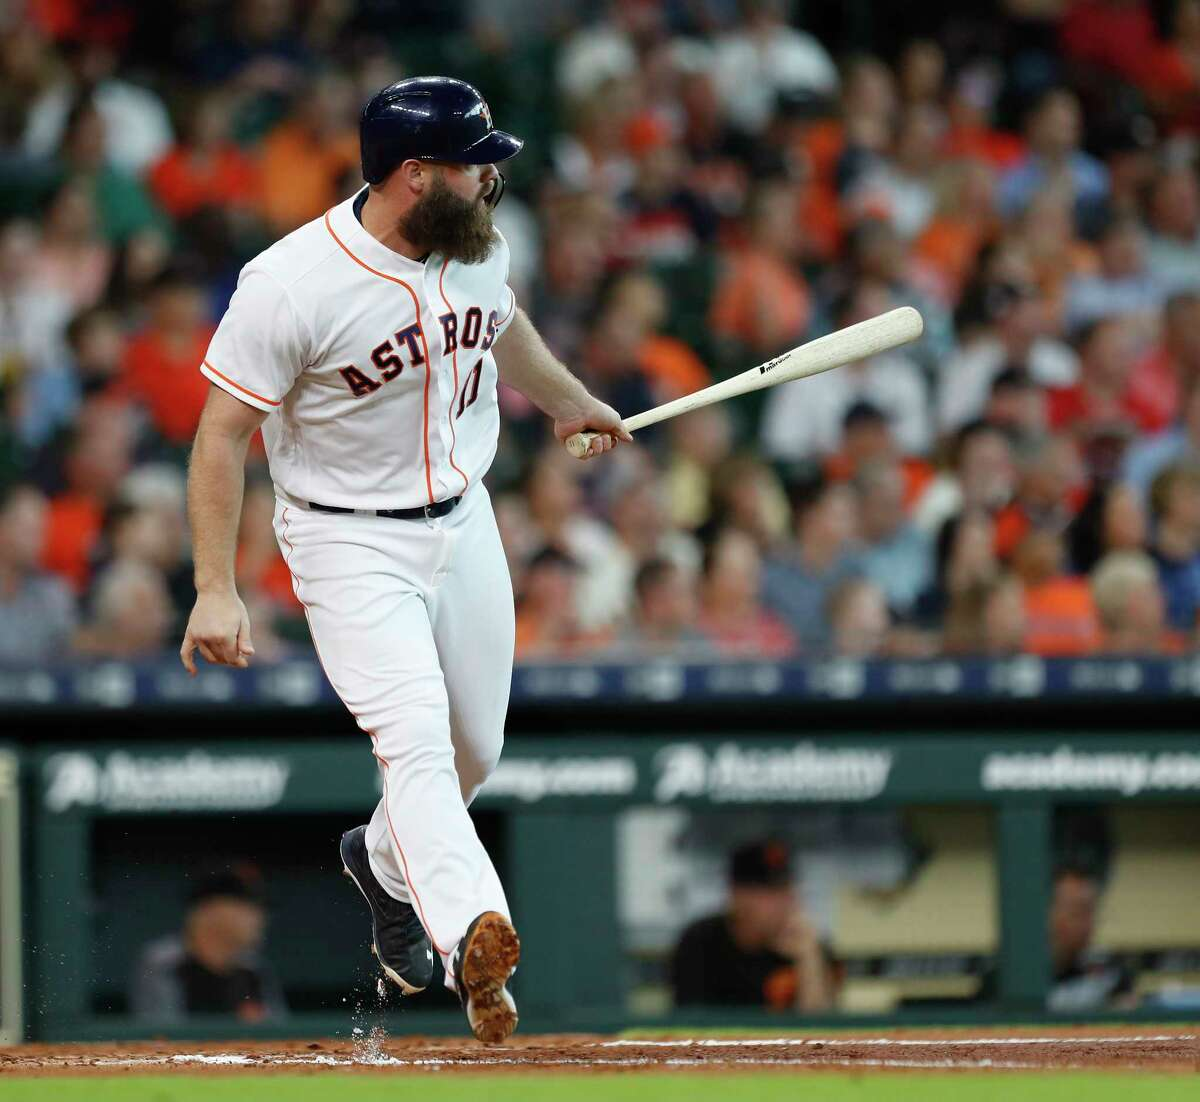 Houston Astros designated hitter Evan Gattis (11) lines out during the third inning of an MLB game at Minute Maid Park, Wednesday, May 23, 2018, in Houston.